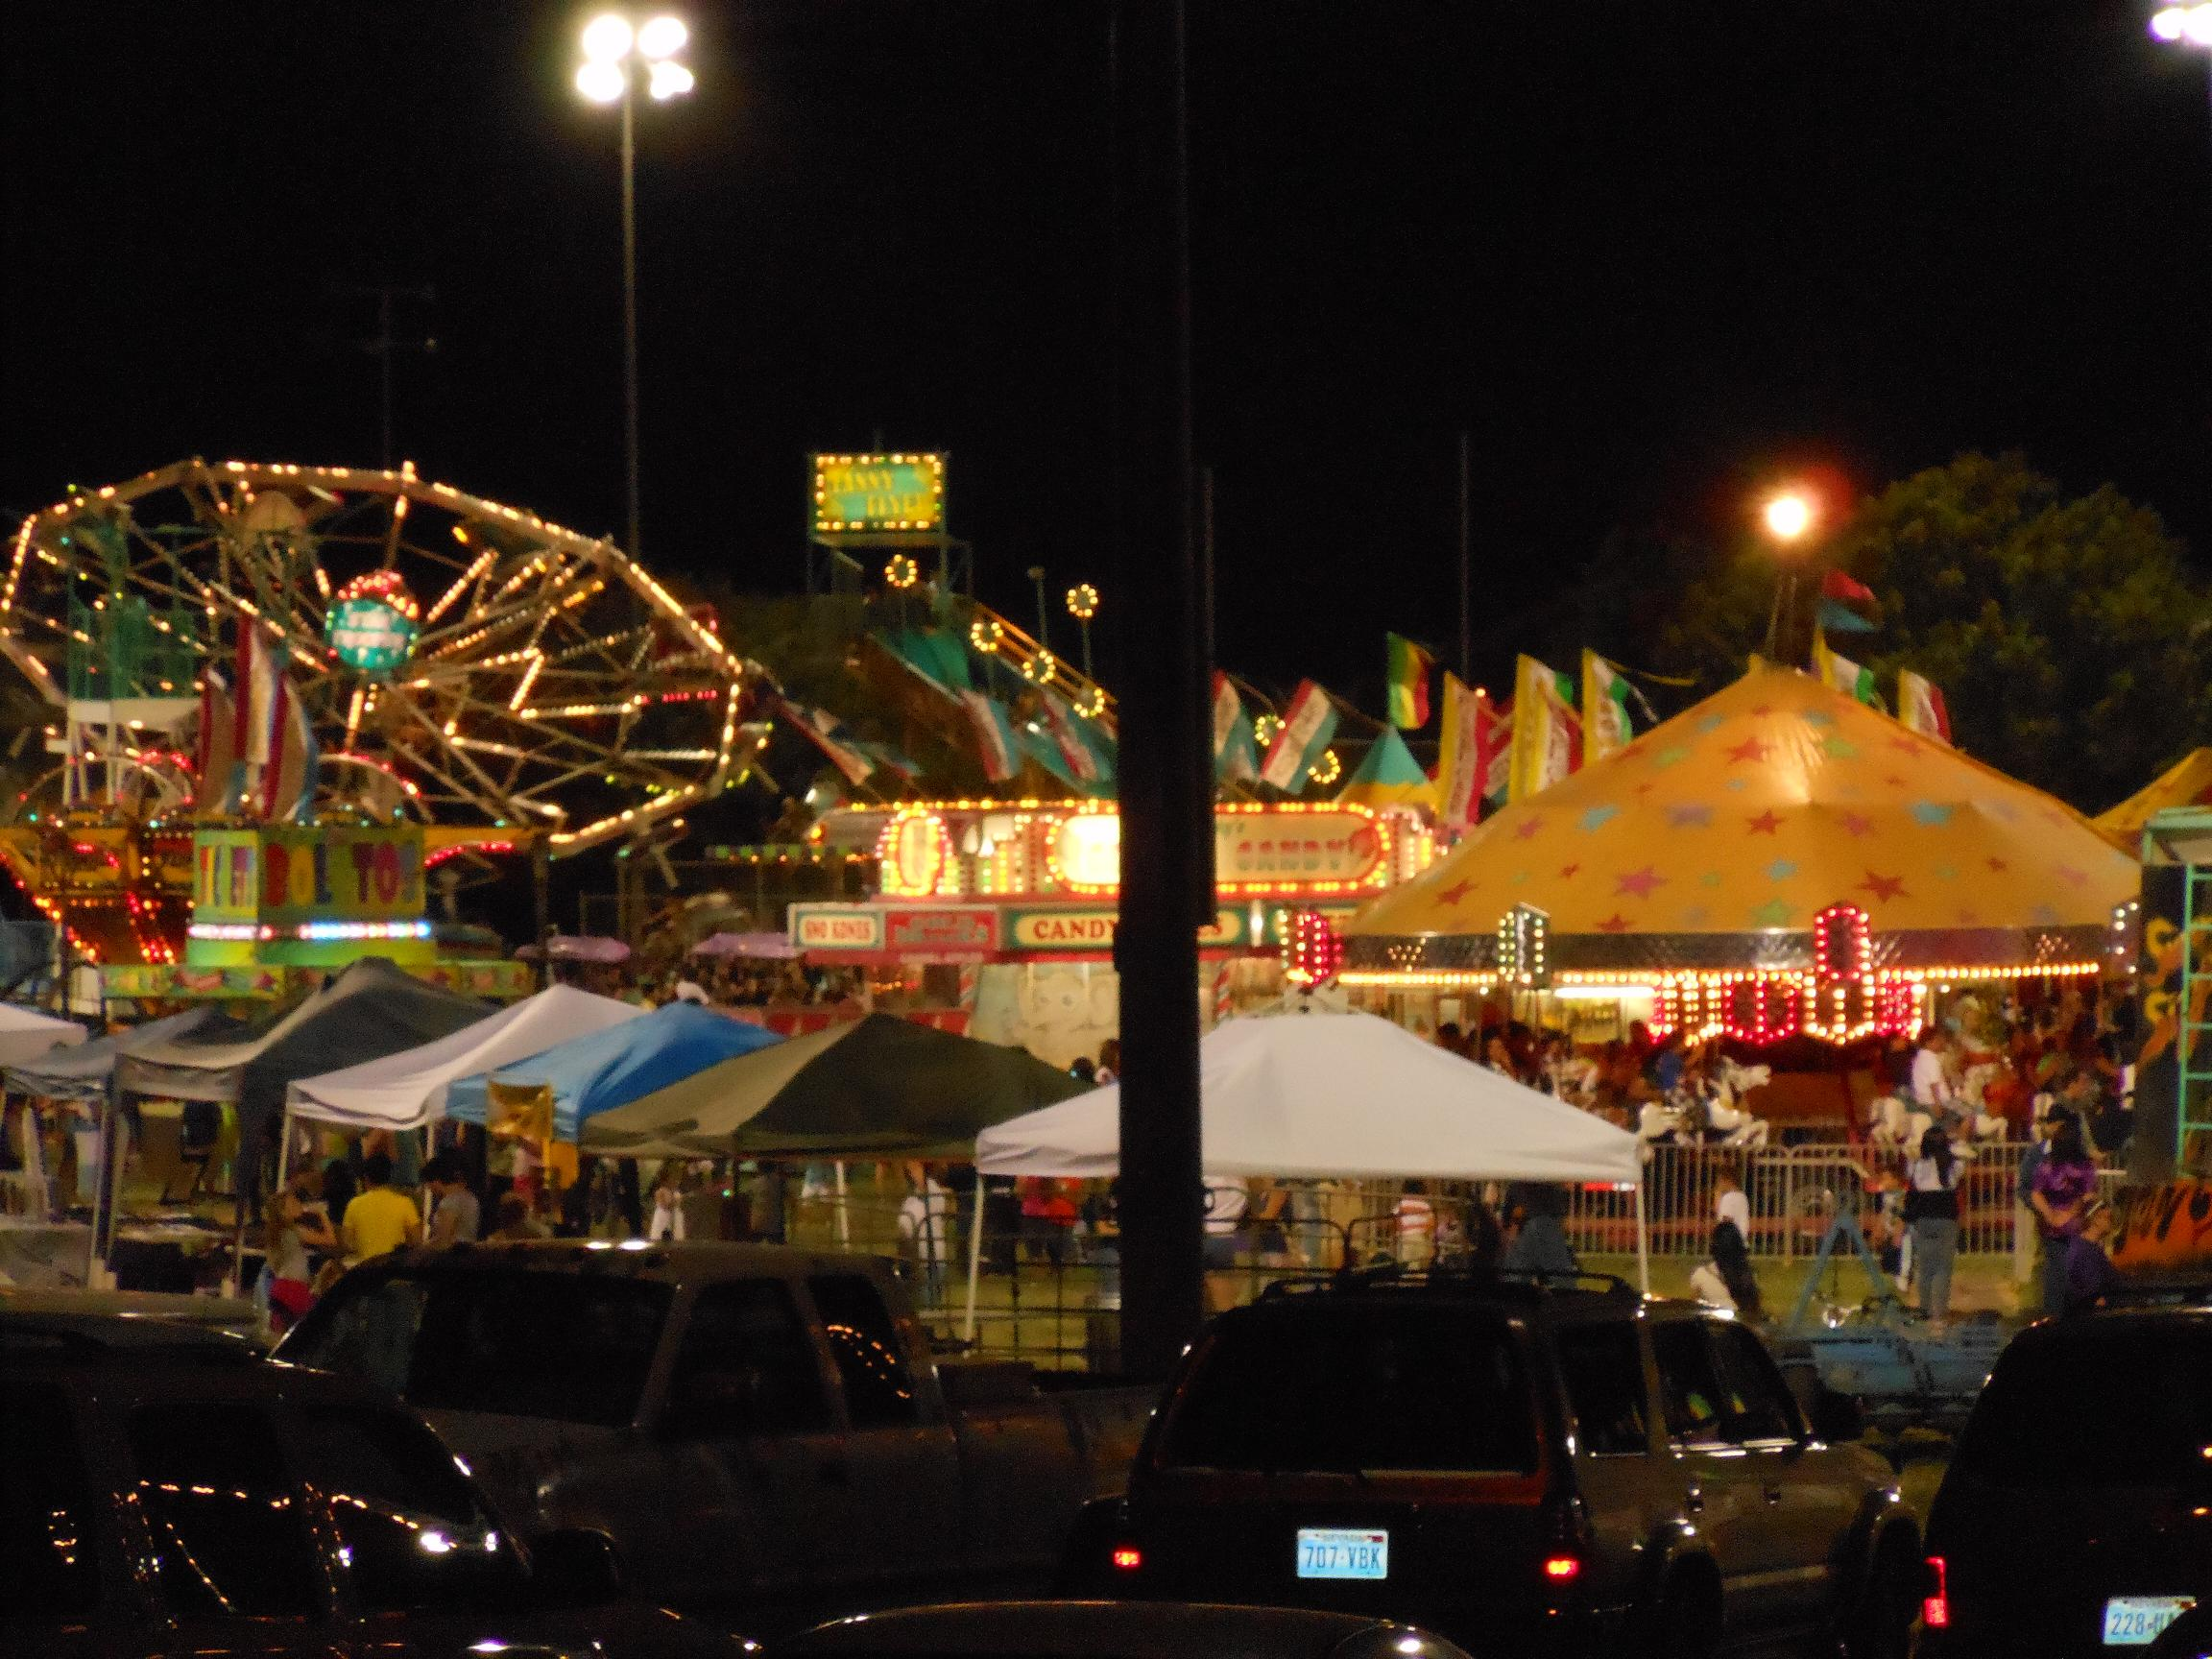 Discounted Advanced Sale Carnival Ride Tickets MESQUITE DAYS 2019